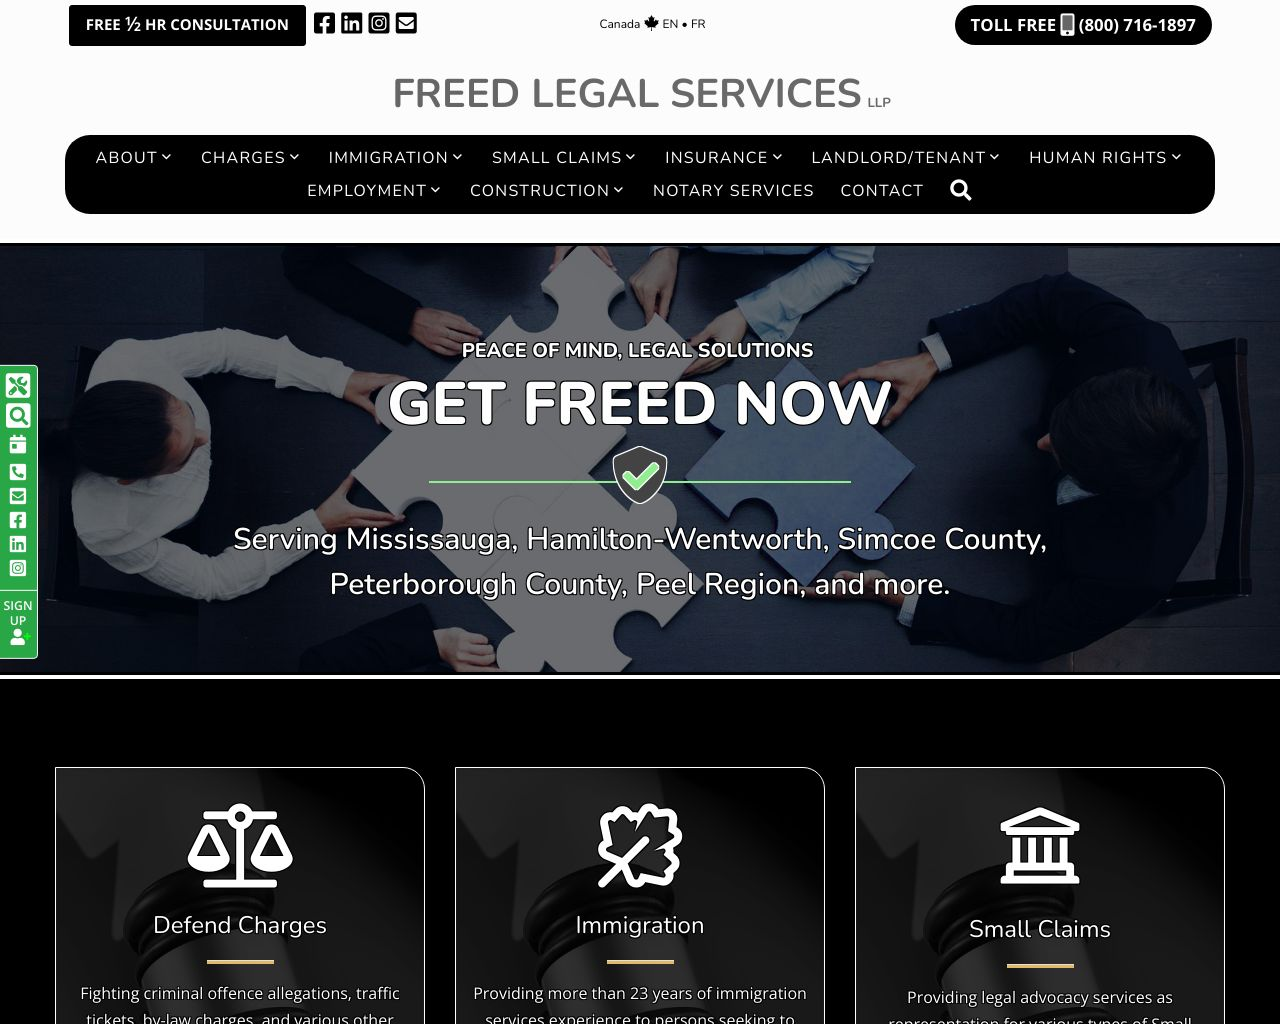 Website: Freed Legal Services LLP